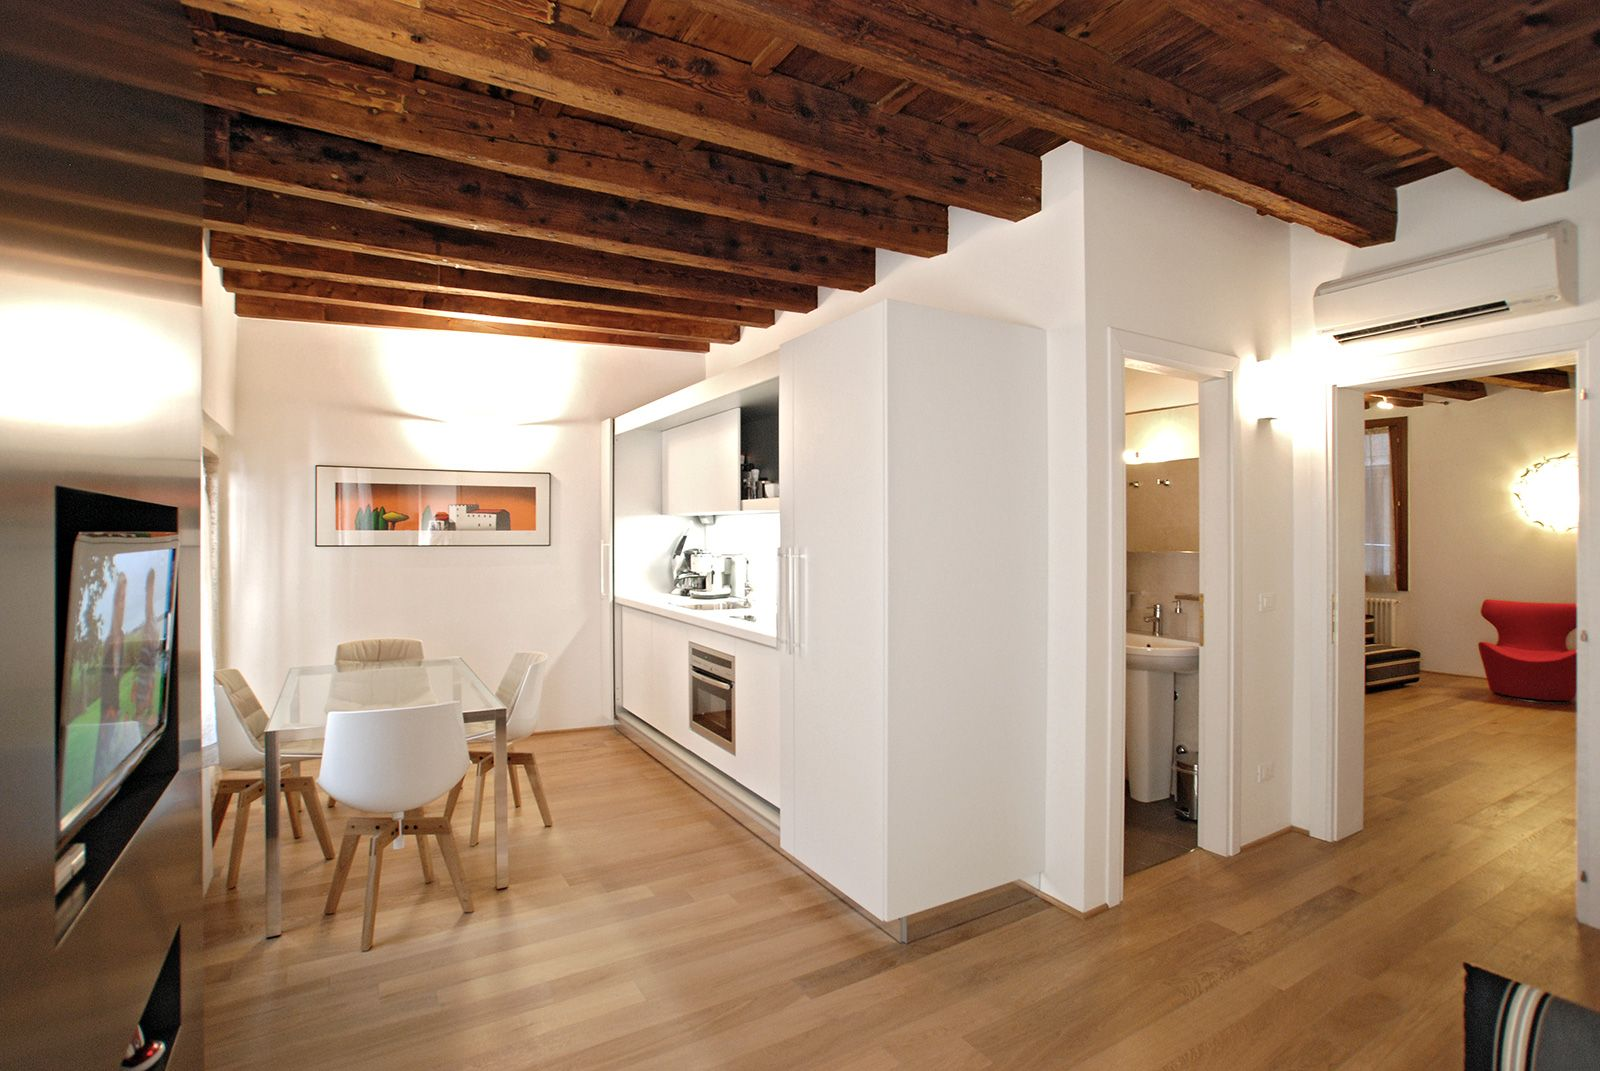 the Miracoli is a cozy brand new apartment in central location